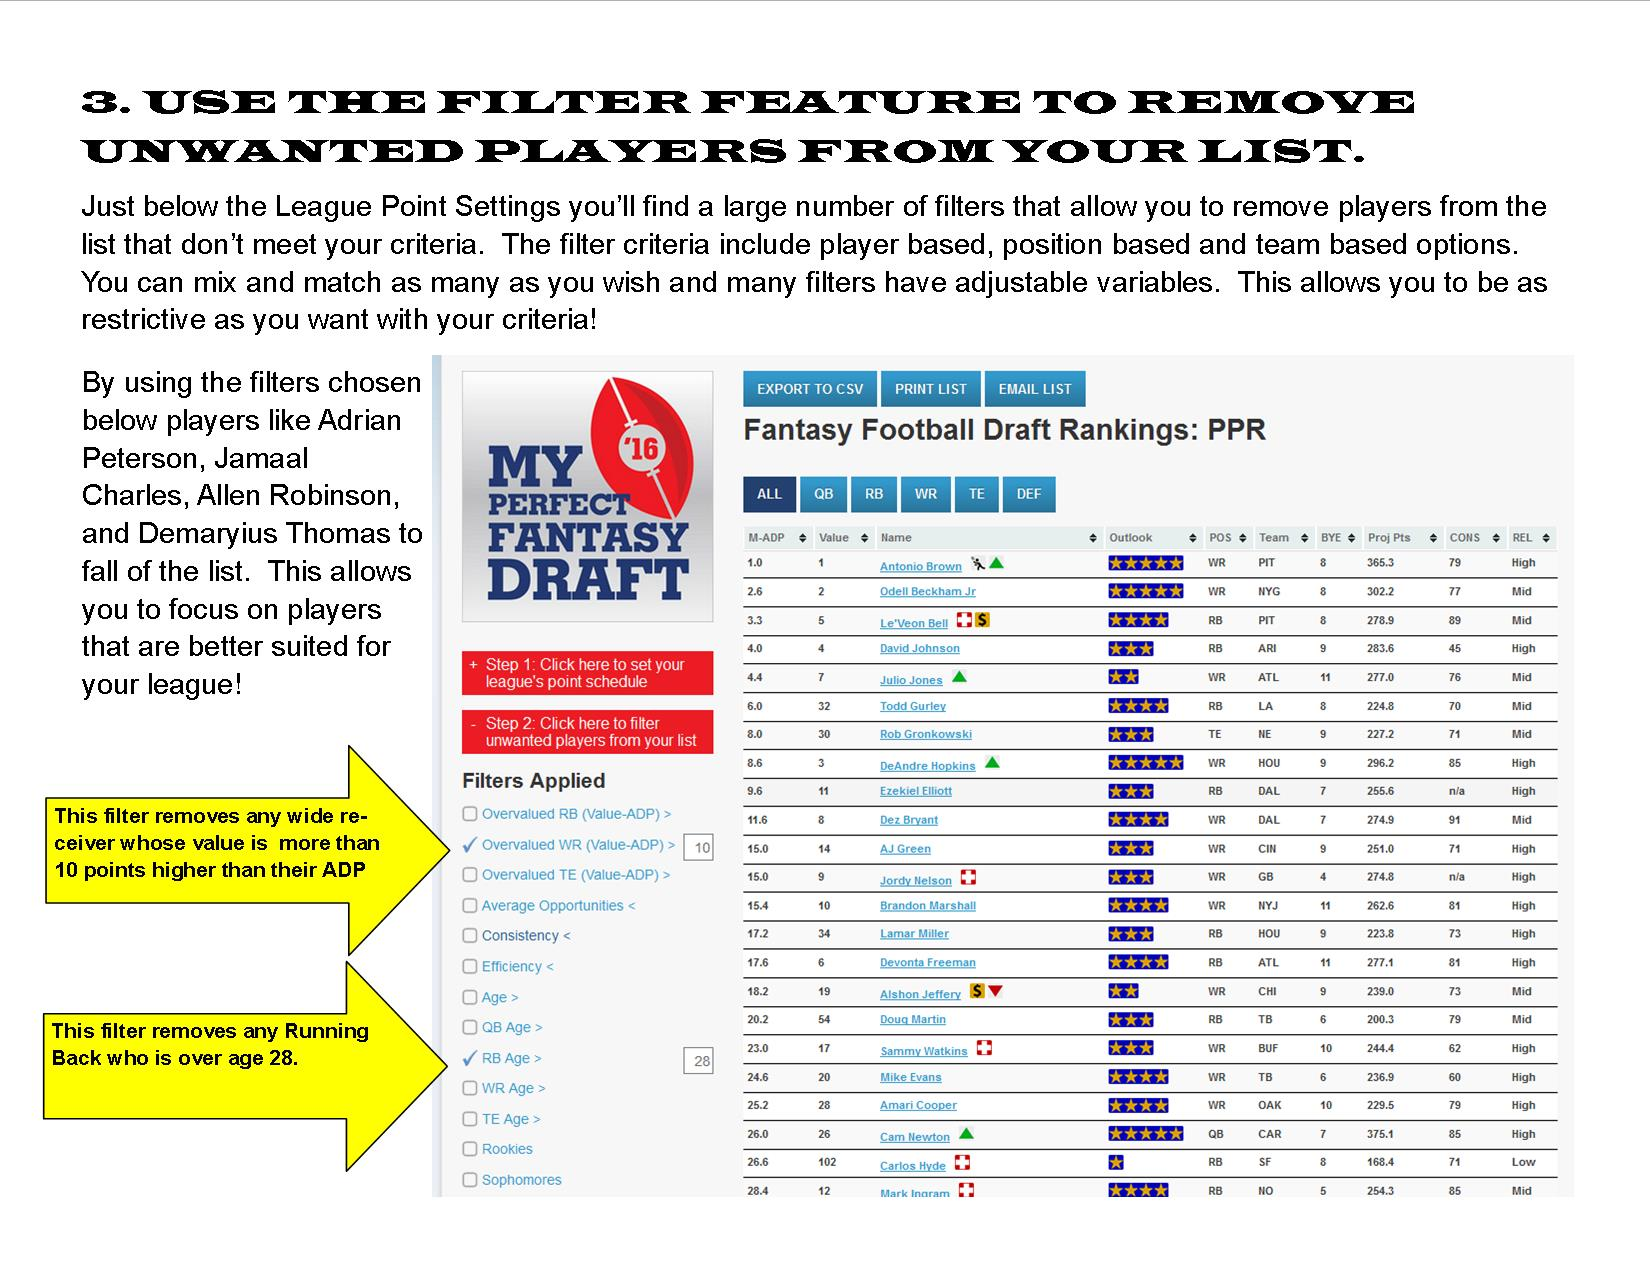 Use the filter to remove unwanted players from your list